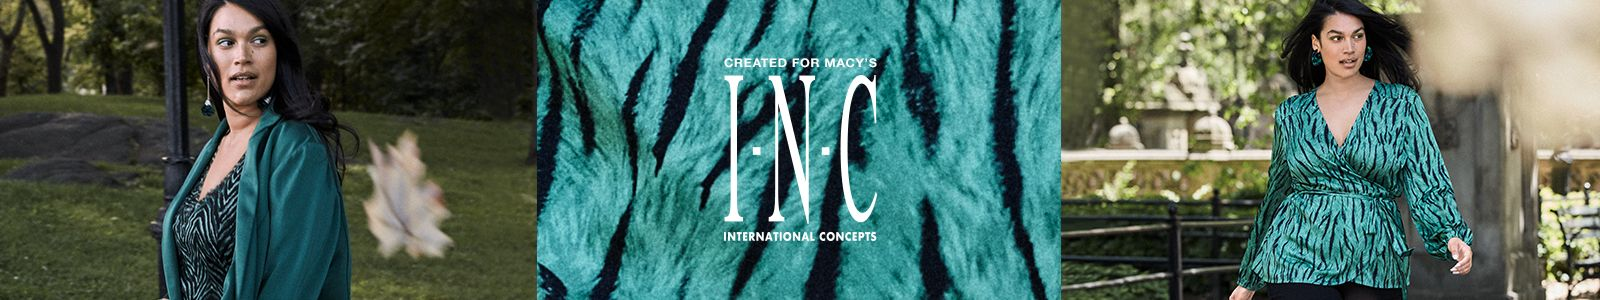 Created for Macy's I.N.C, International Concepts